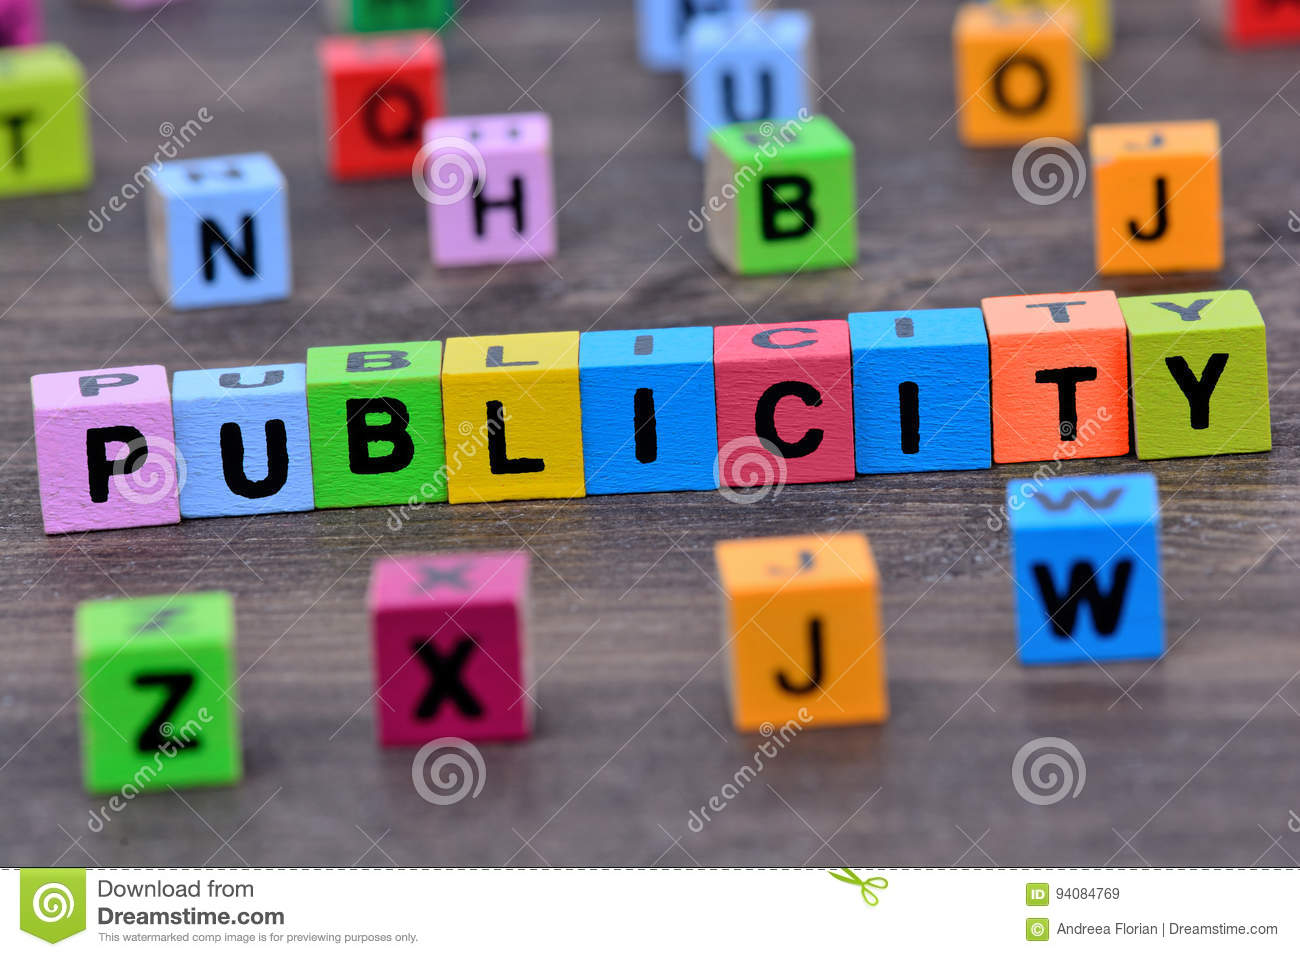 Publicity word on table